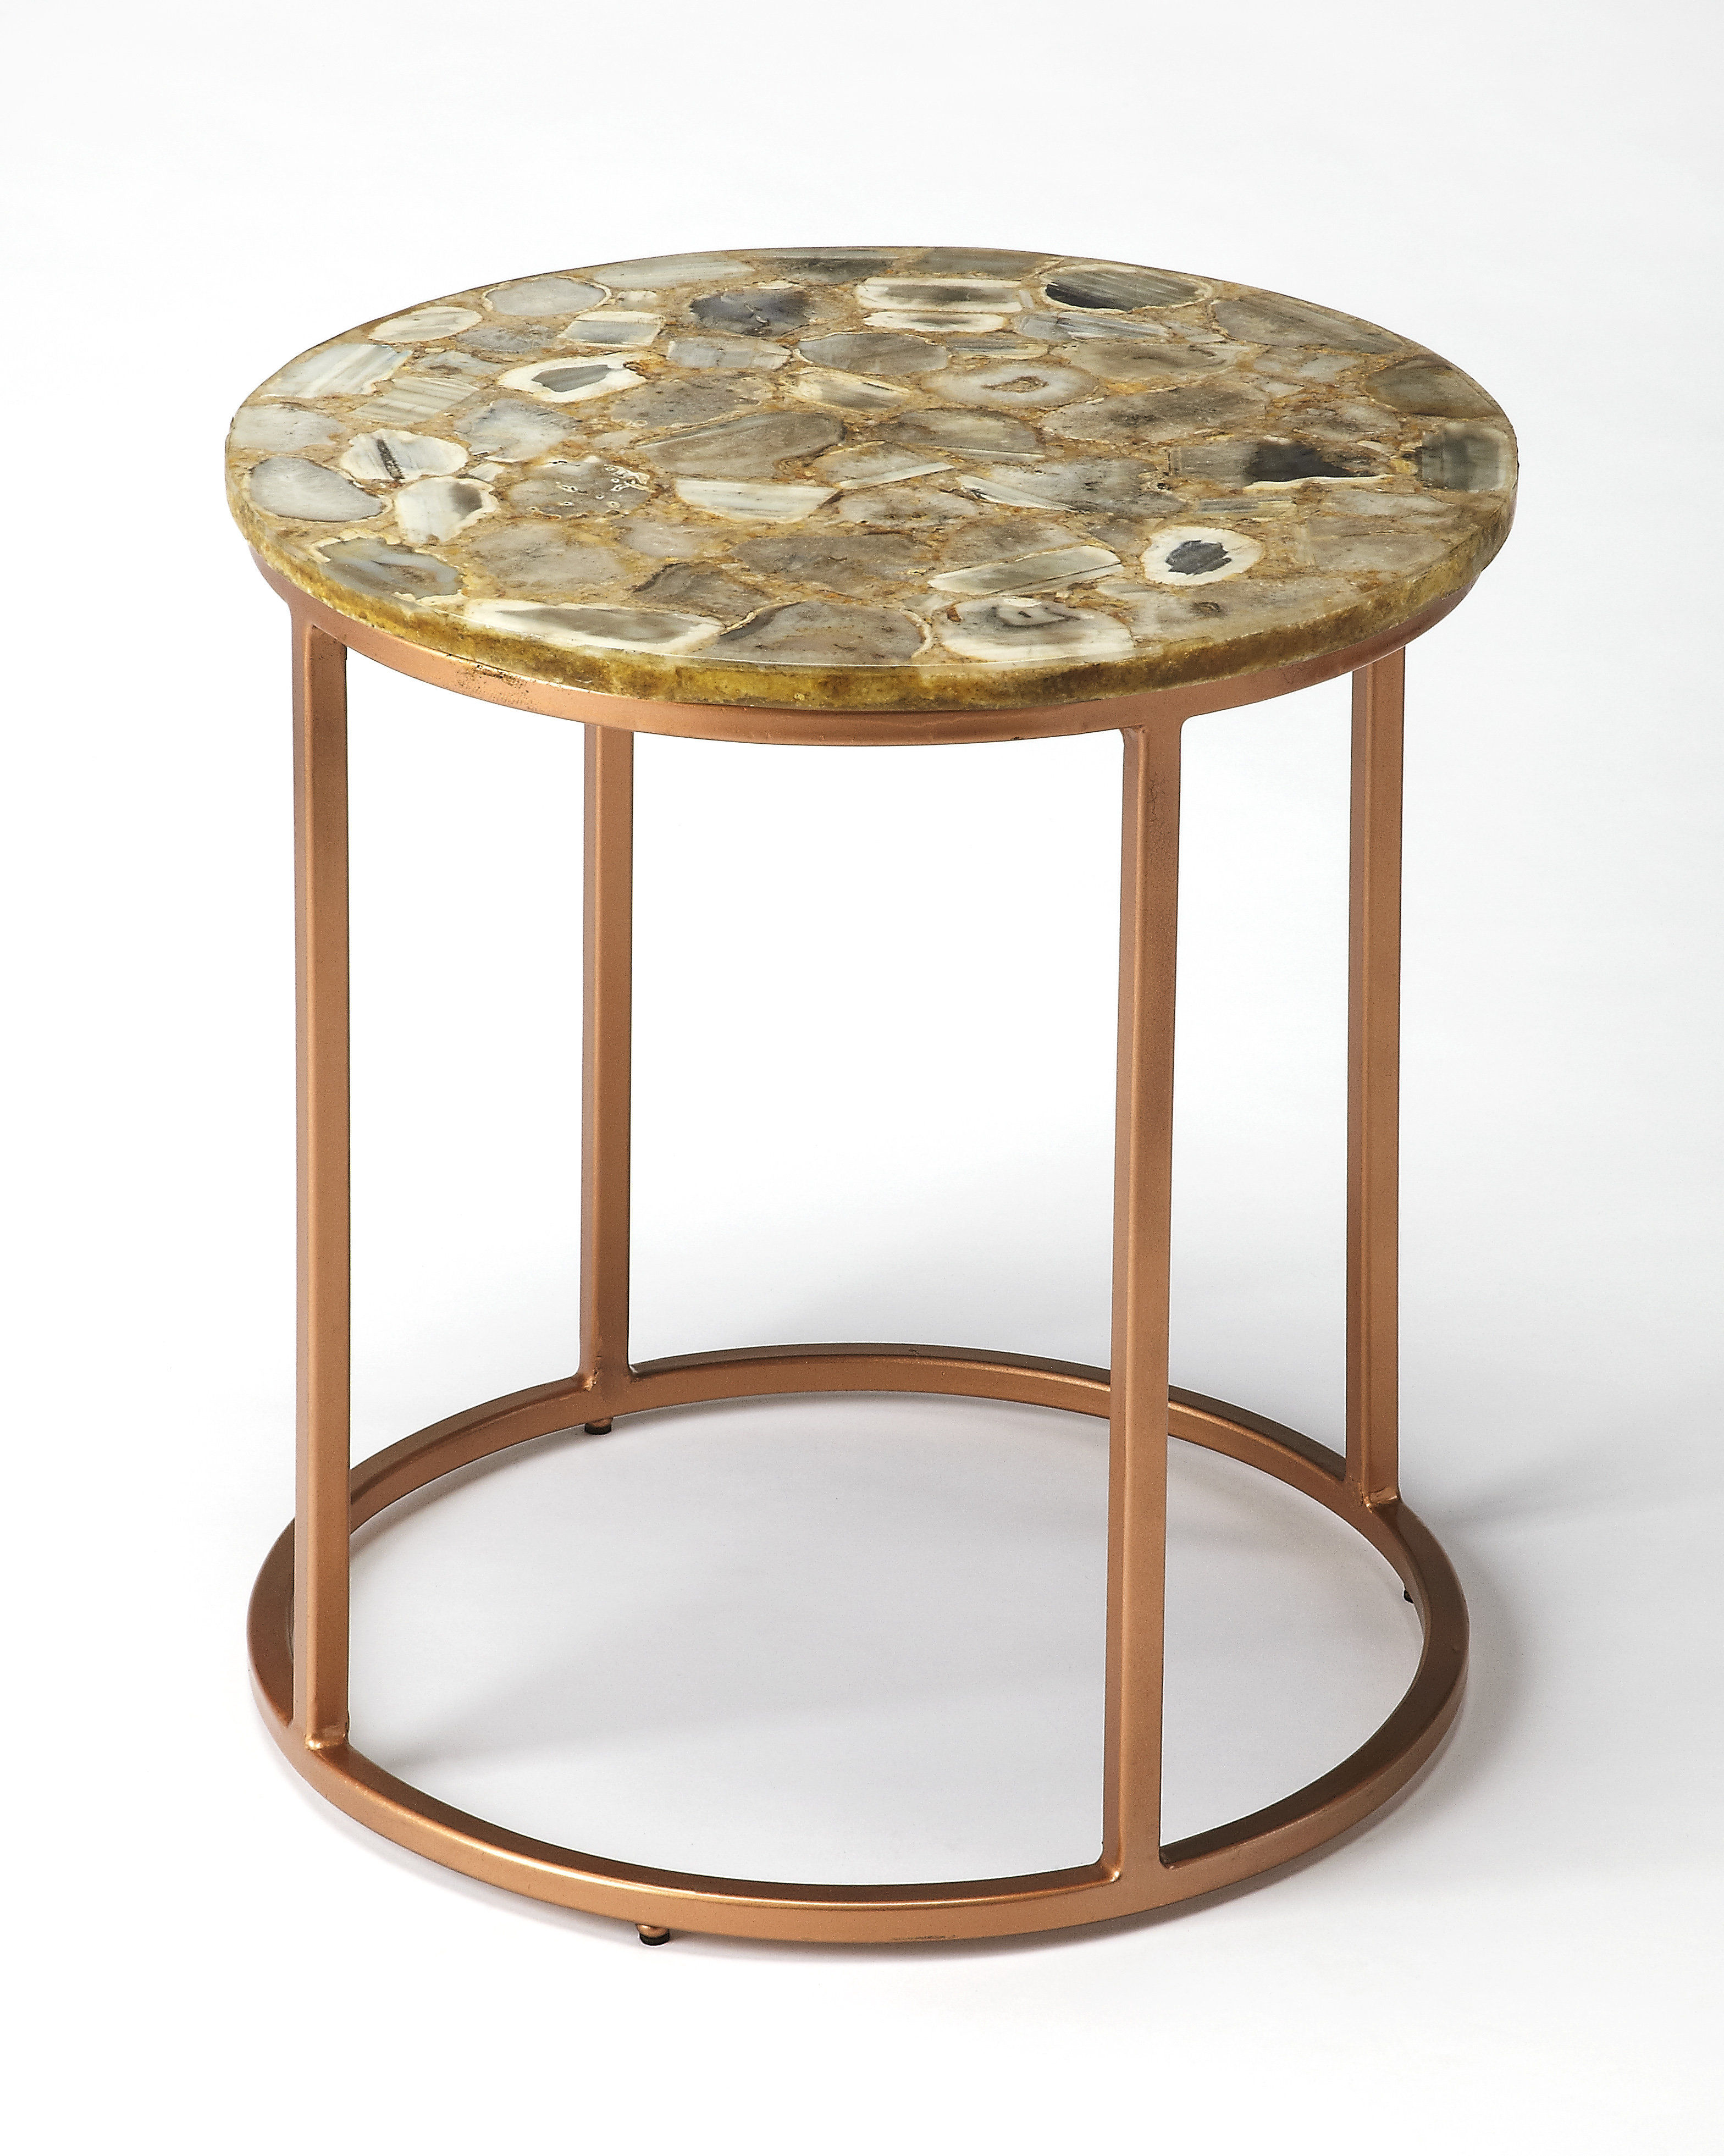 everly quinn aliya agate end table glass accent bedding storage inch high tables gold decorative accessories patterned rug wardrobe furniture dale tiffany crystal globe lamp metal